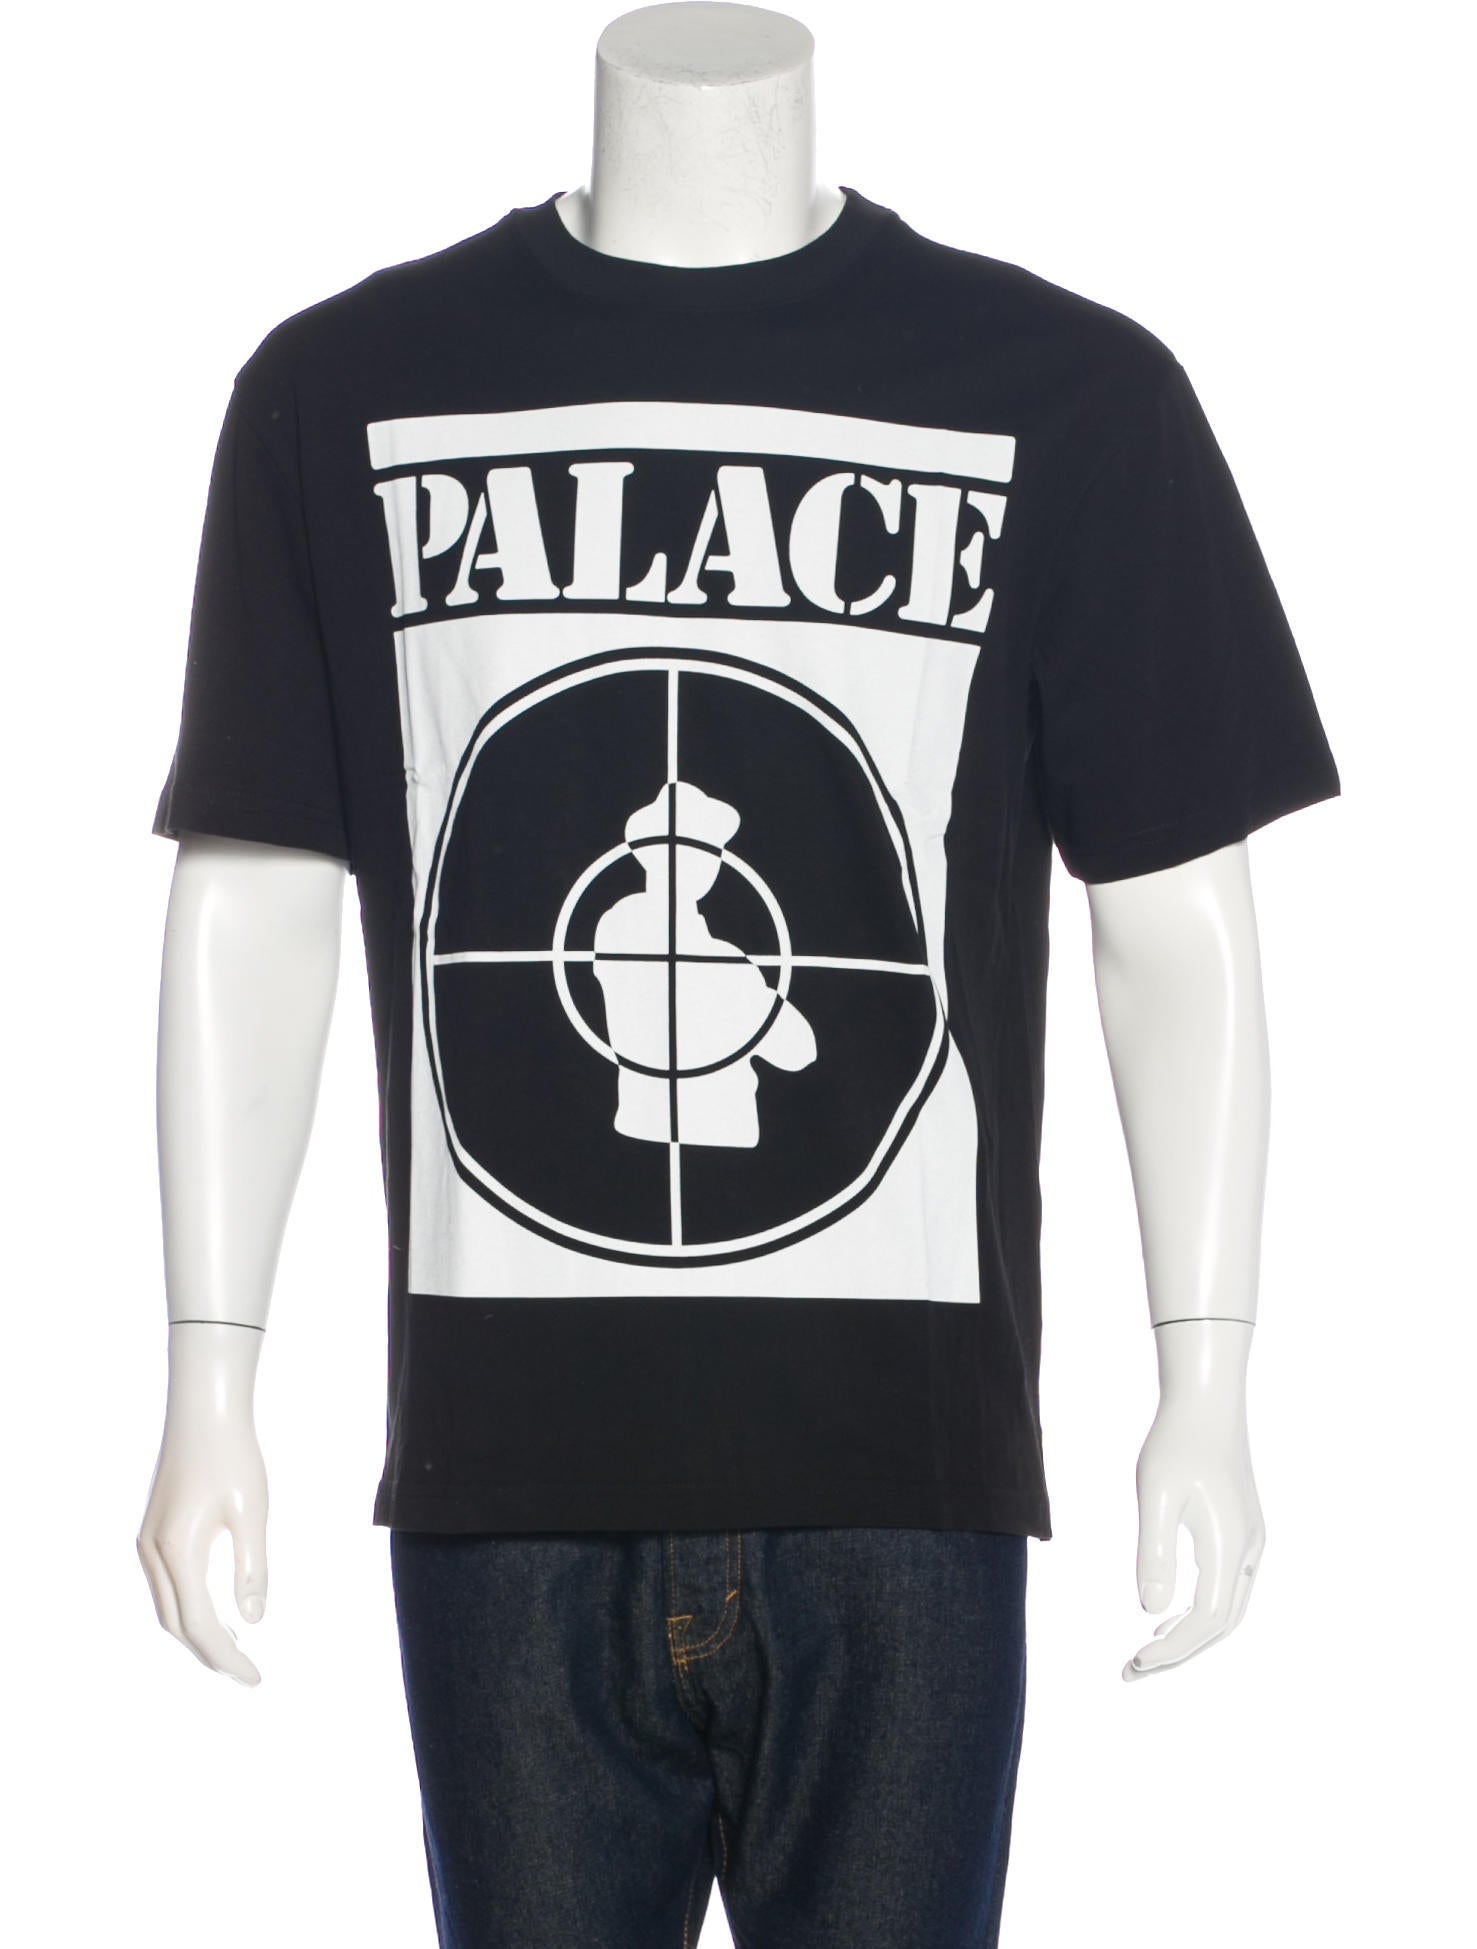 Palace skateboards graphic print t shirt clothing for T shirt graphic printing